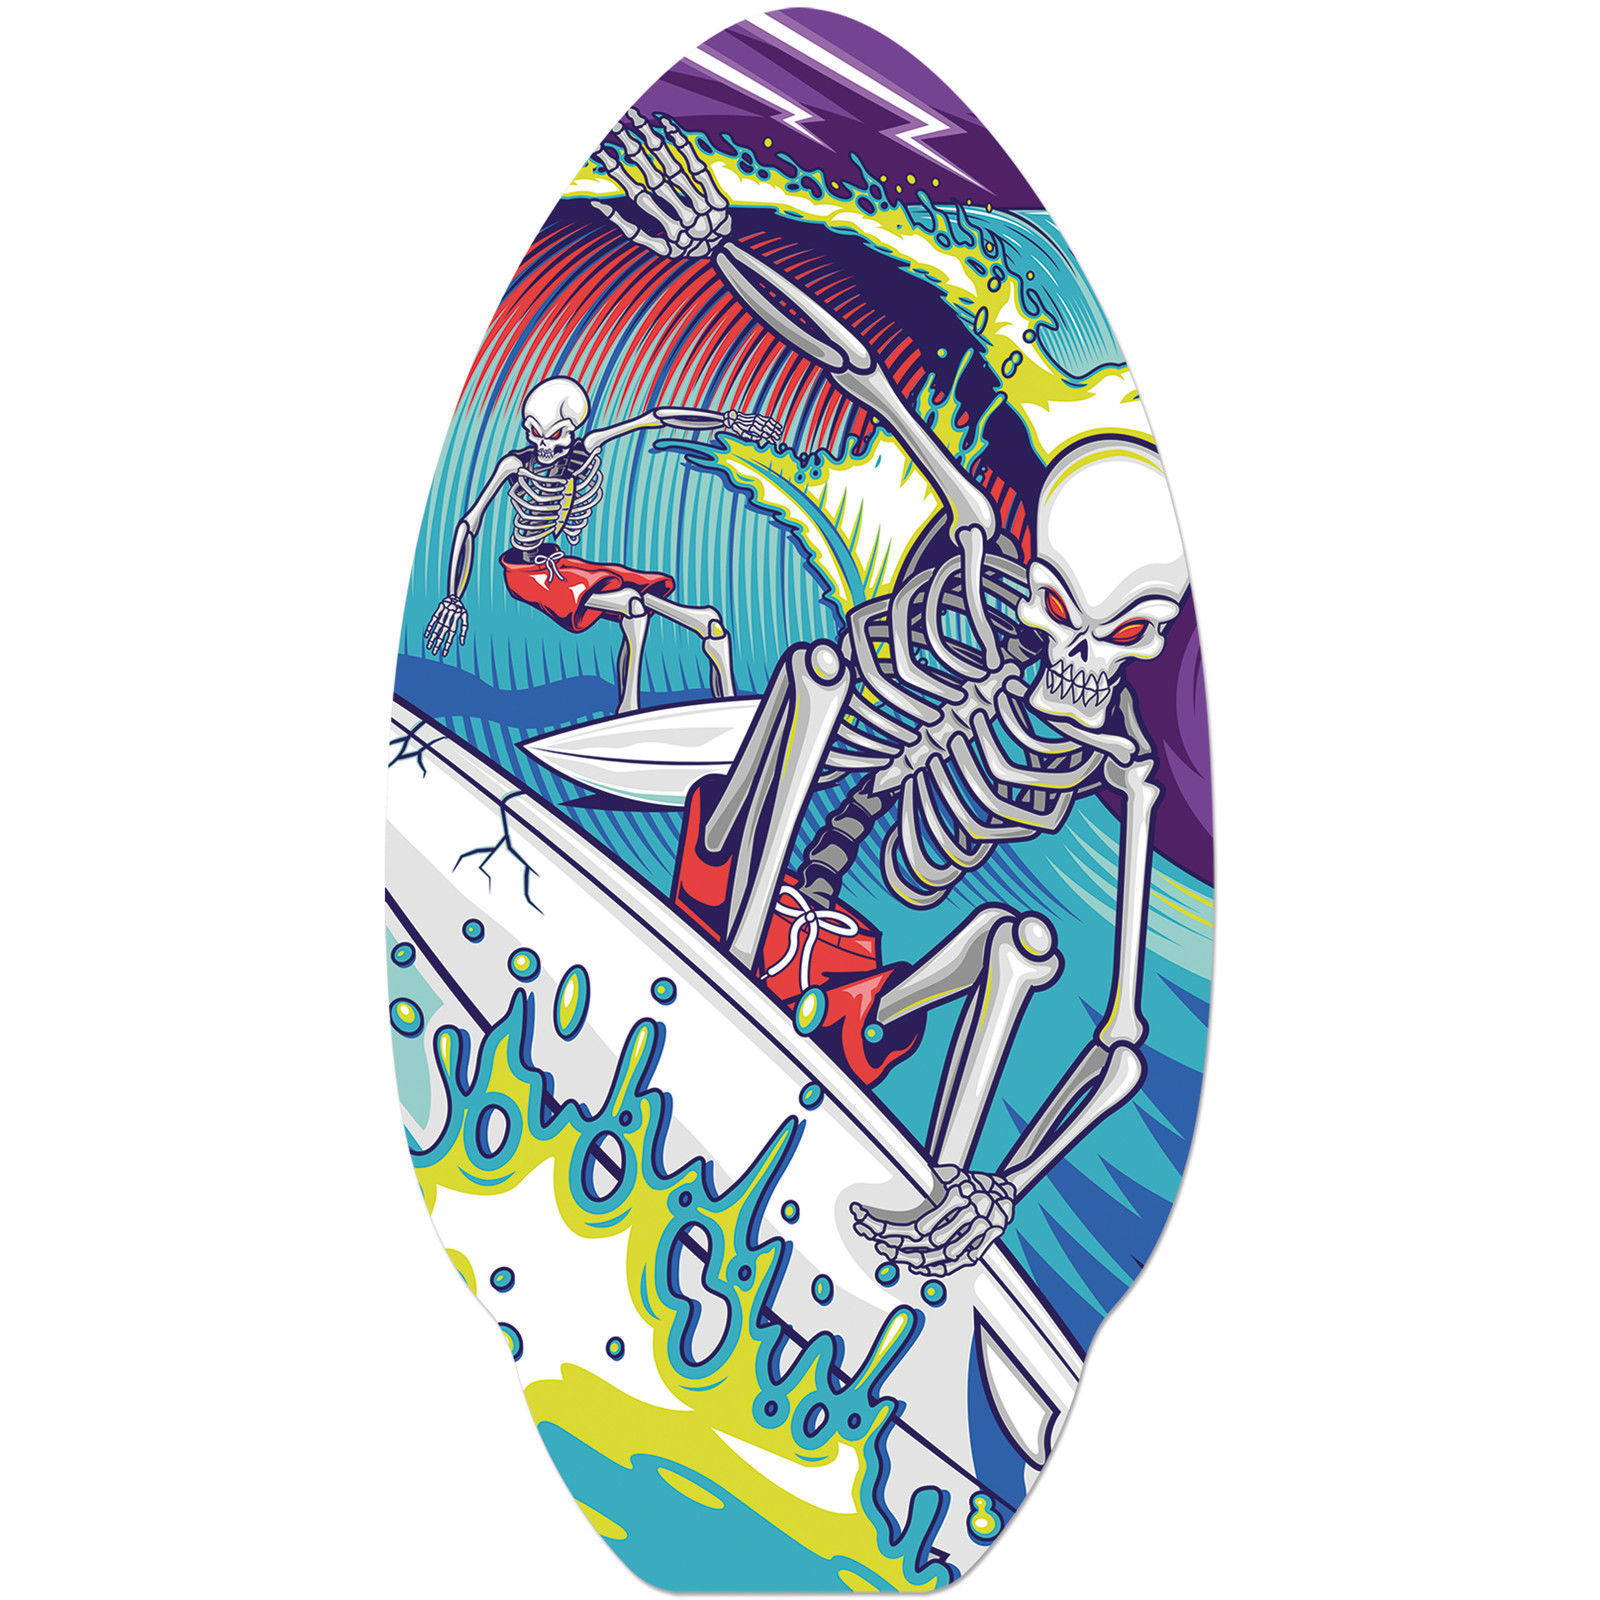 Skimboard with Surfing skeleton logo or use for VW camper table